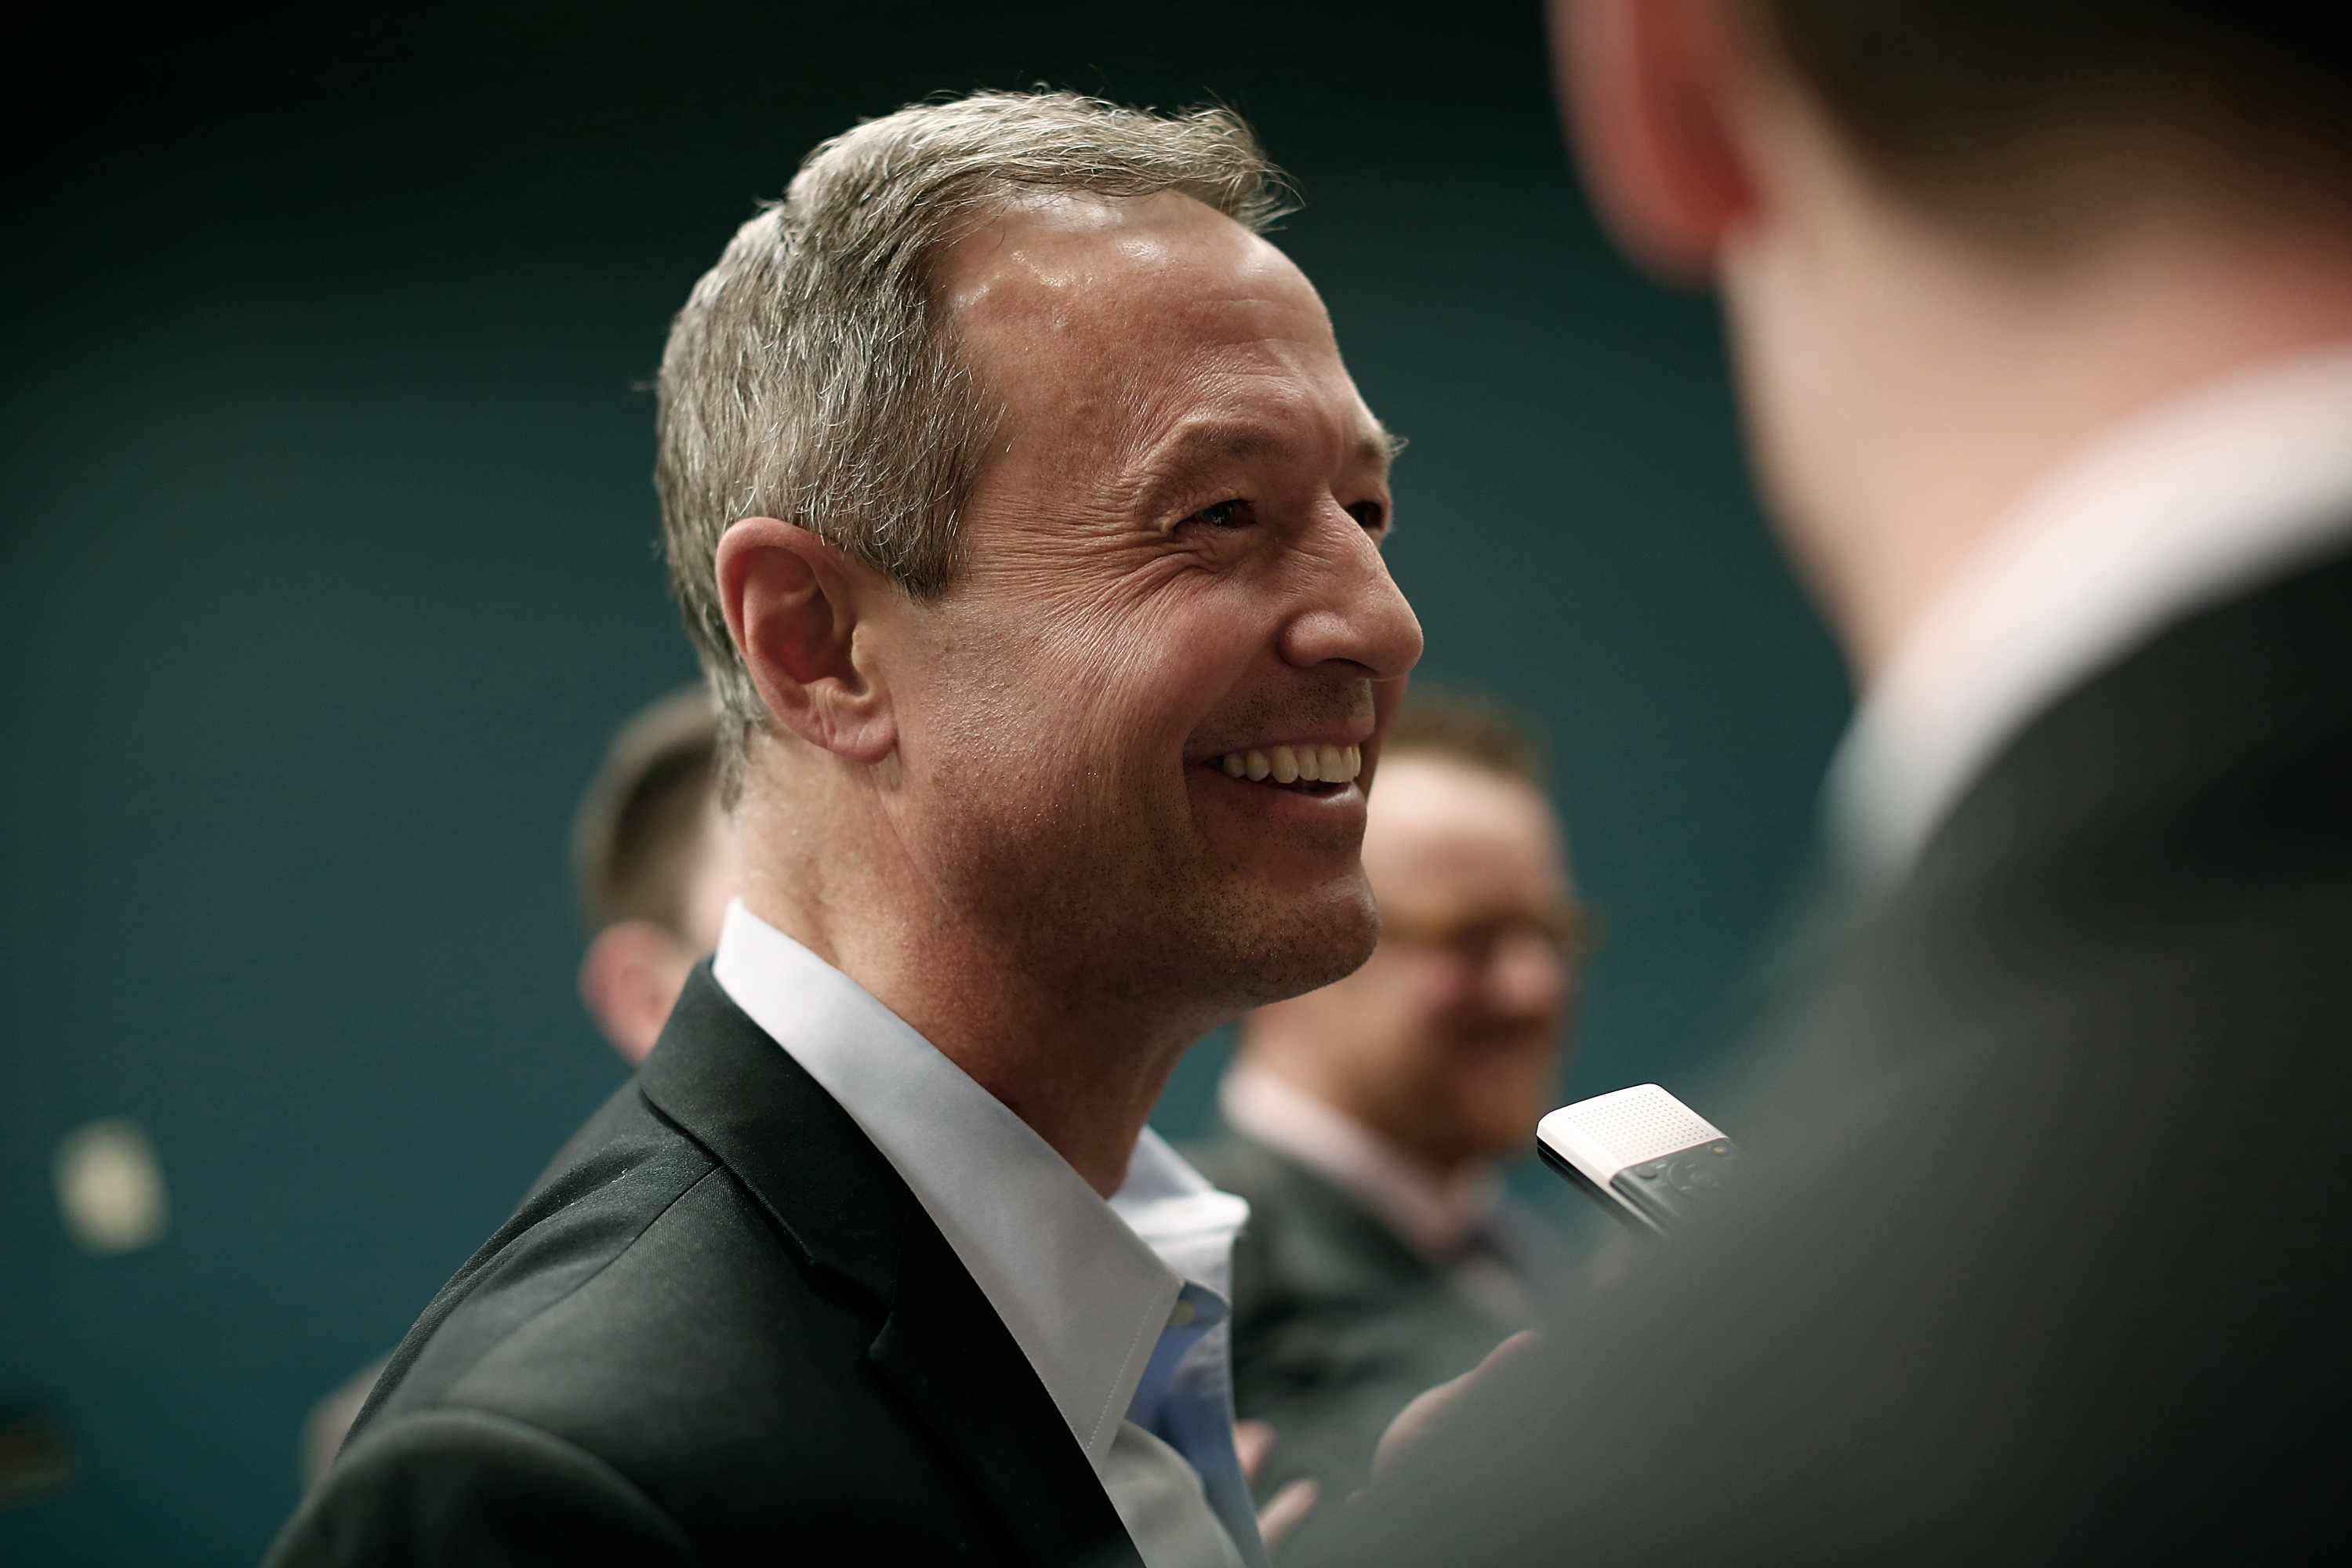 Potential Democratic presidential candidate and former Maryland Gov. Martin O'Malley (D-MD) answers questions from reporters after speaking at the South Carolinna Democratic Party state convention April 25, 2015 in Columbia, South Carolina.